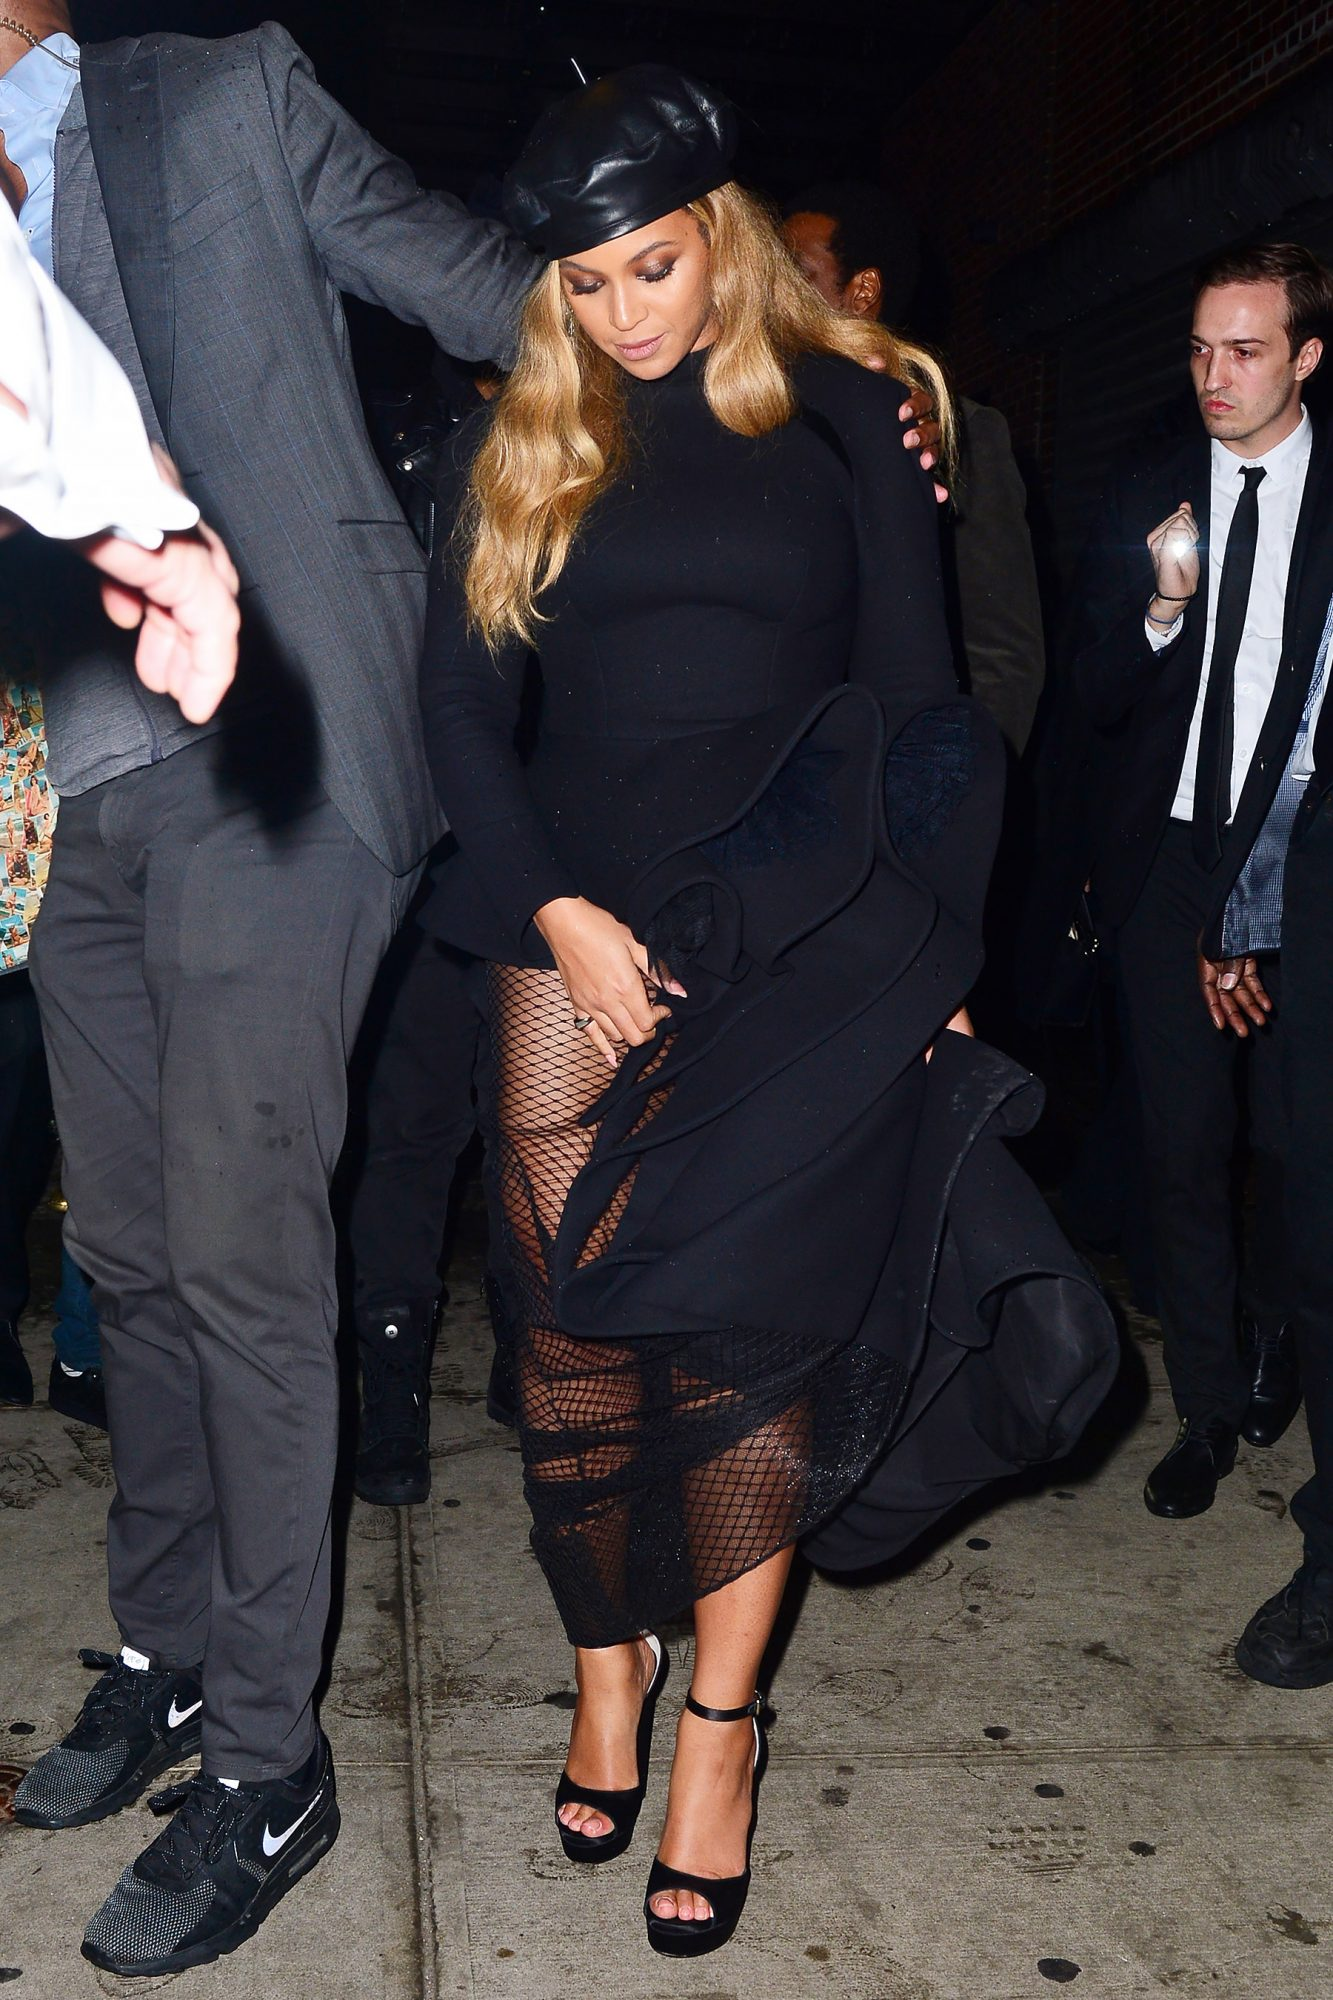 Beyonce rocks a beret as she steps out with Jay Z at Catch NYC